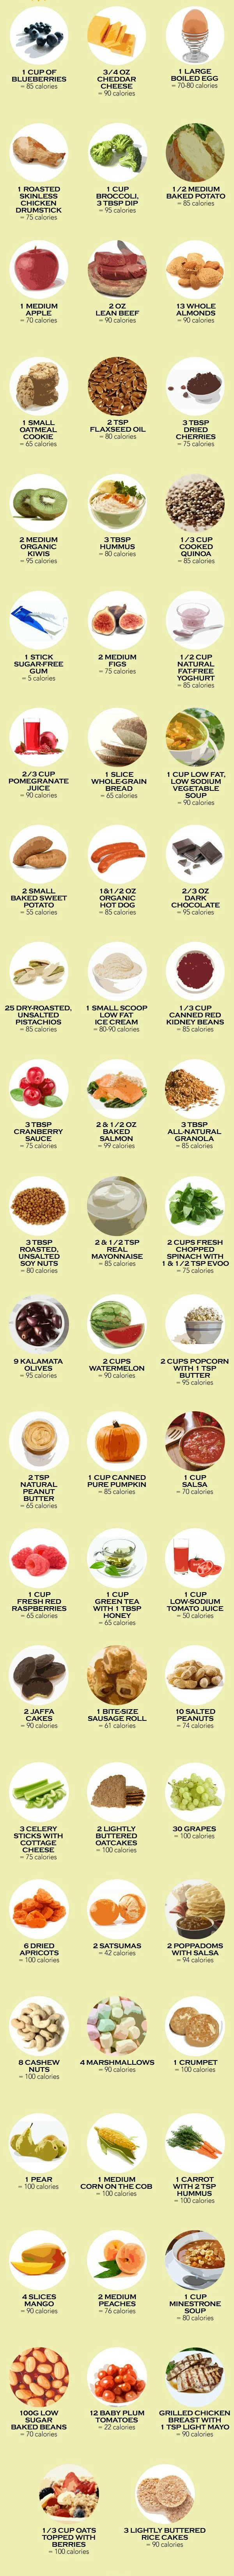 Here are over 50 healthy snacks under 100 calories to help you control your weight #8020wellnessplan #herbalife #healthysnacks